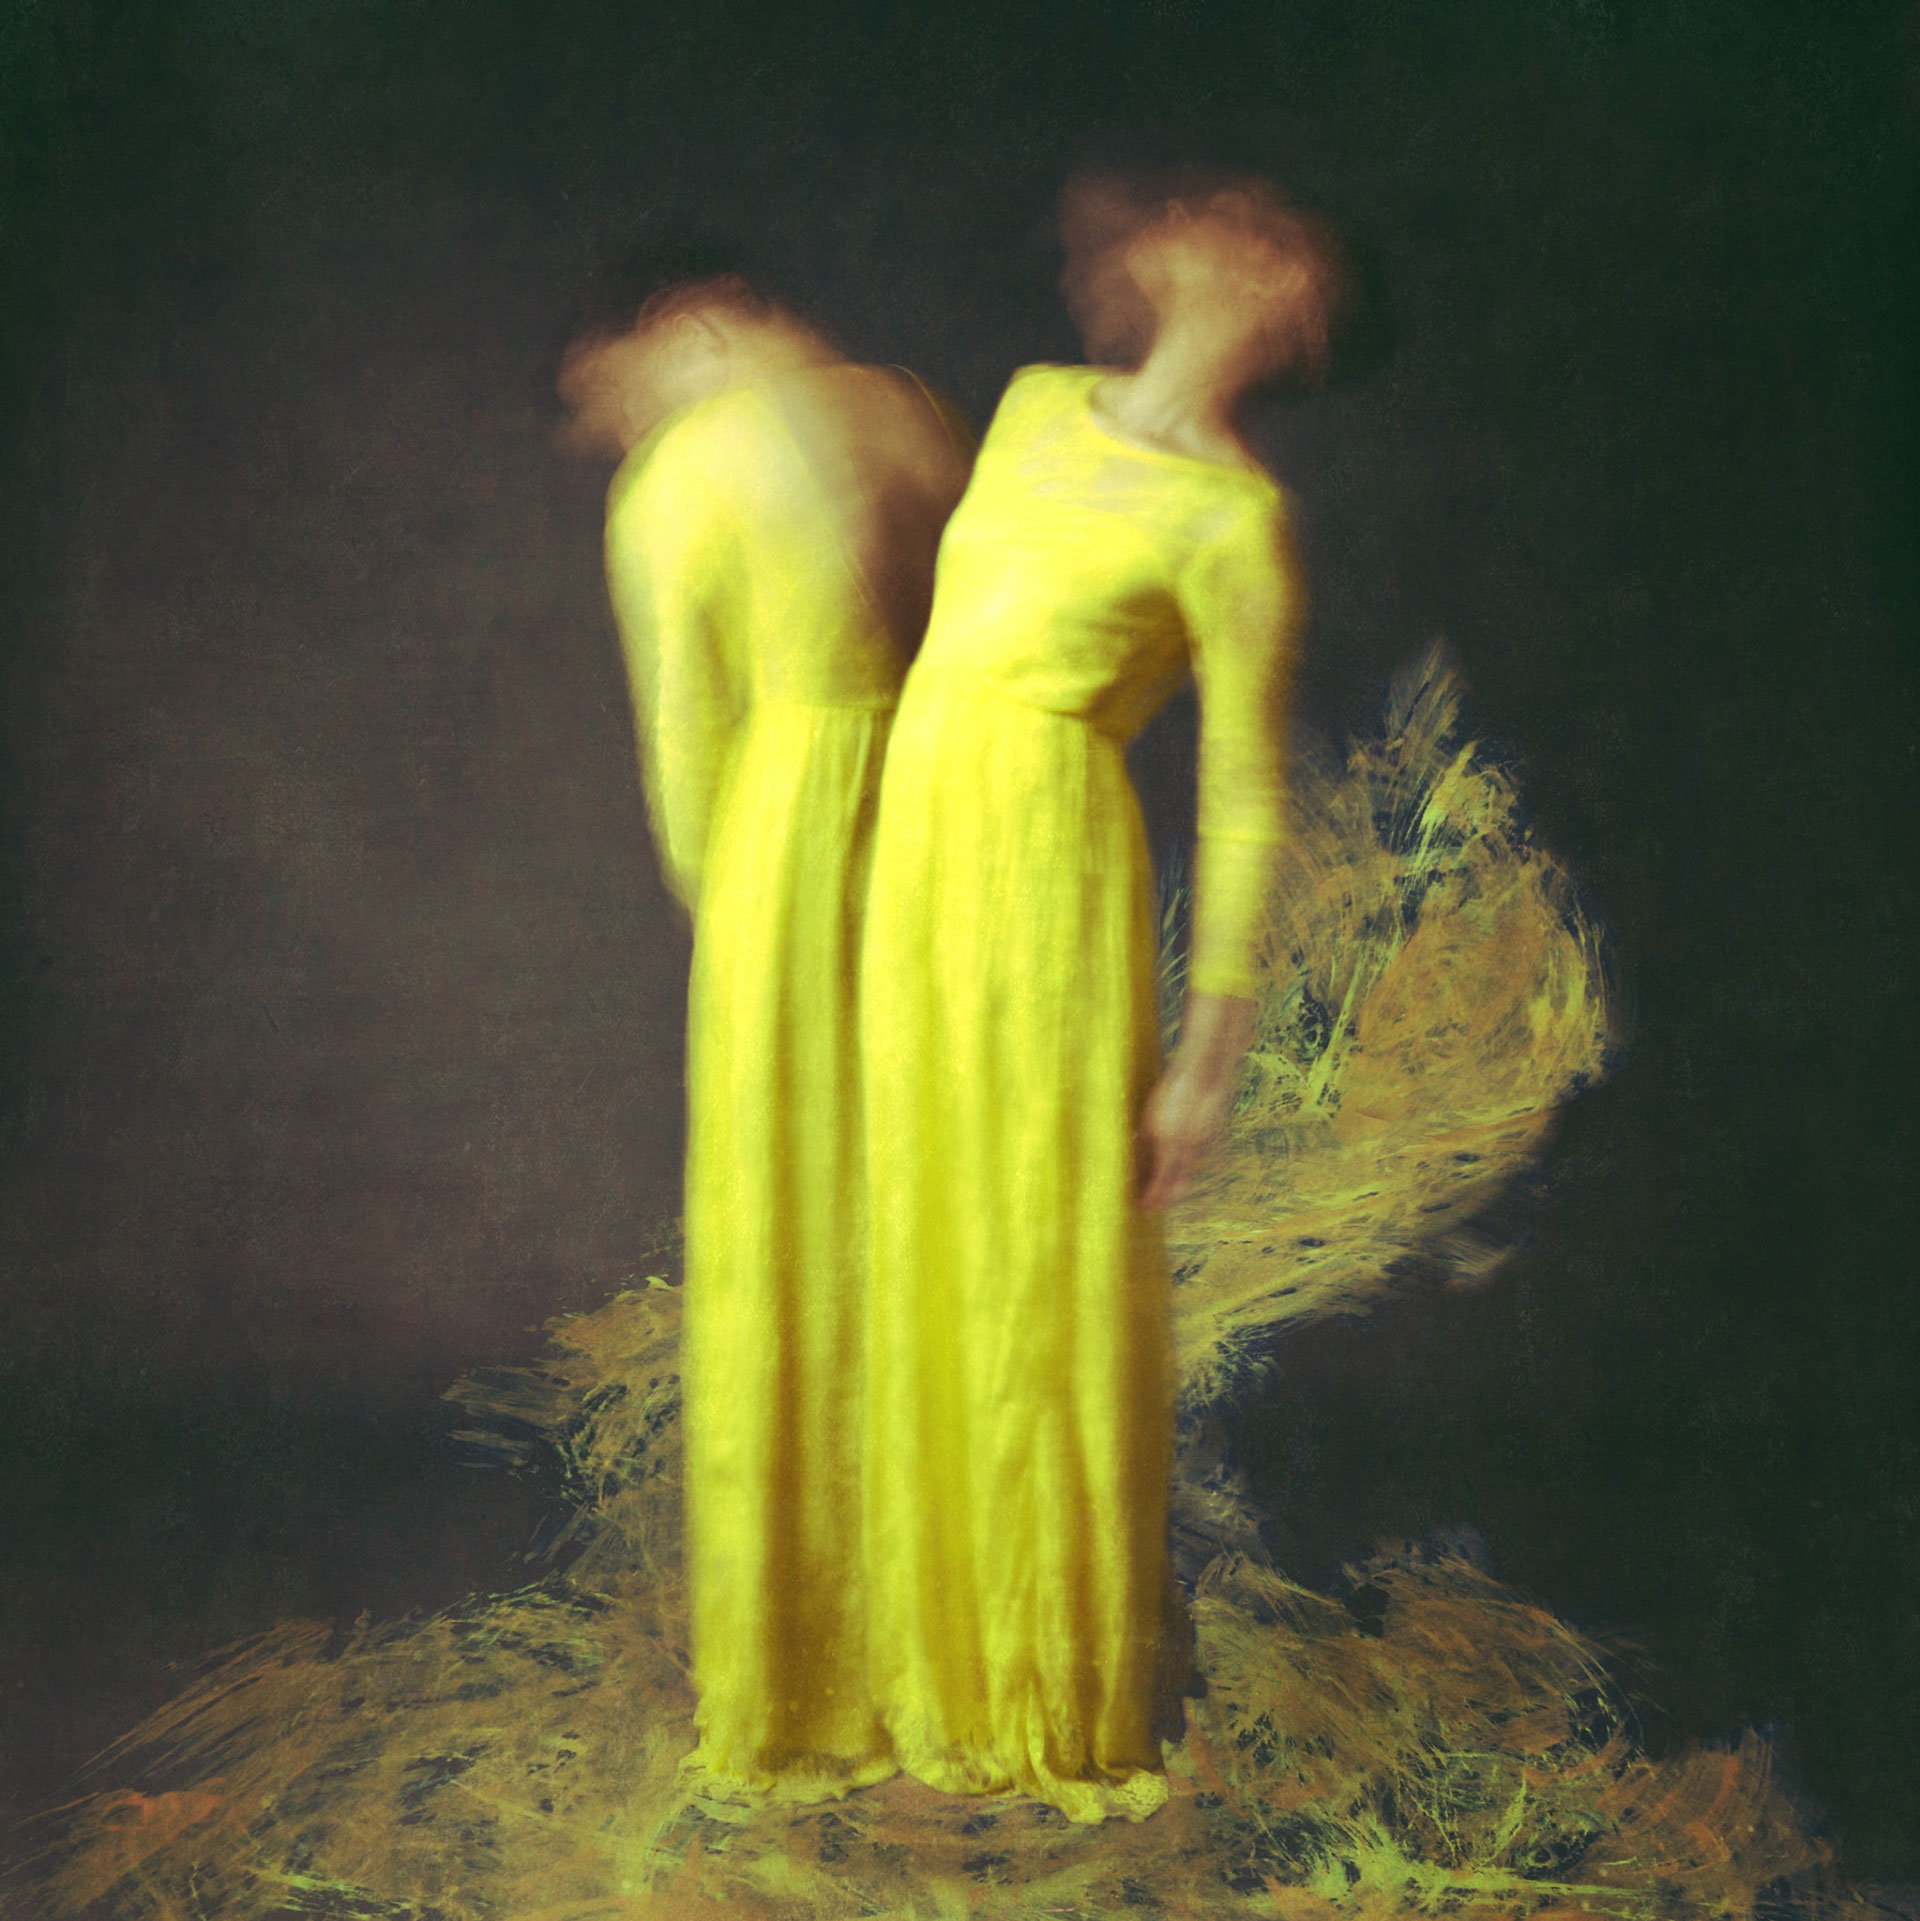 Josephine_Cardin_article_06